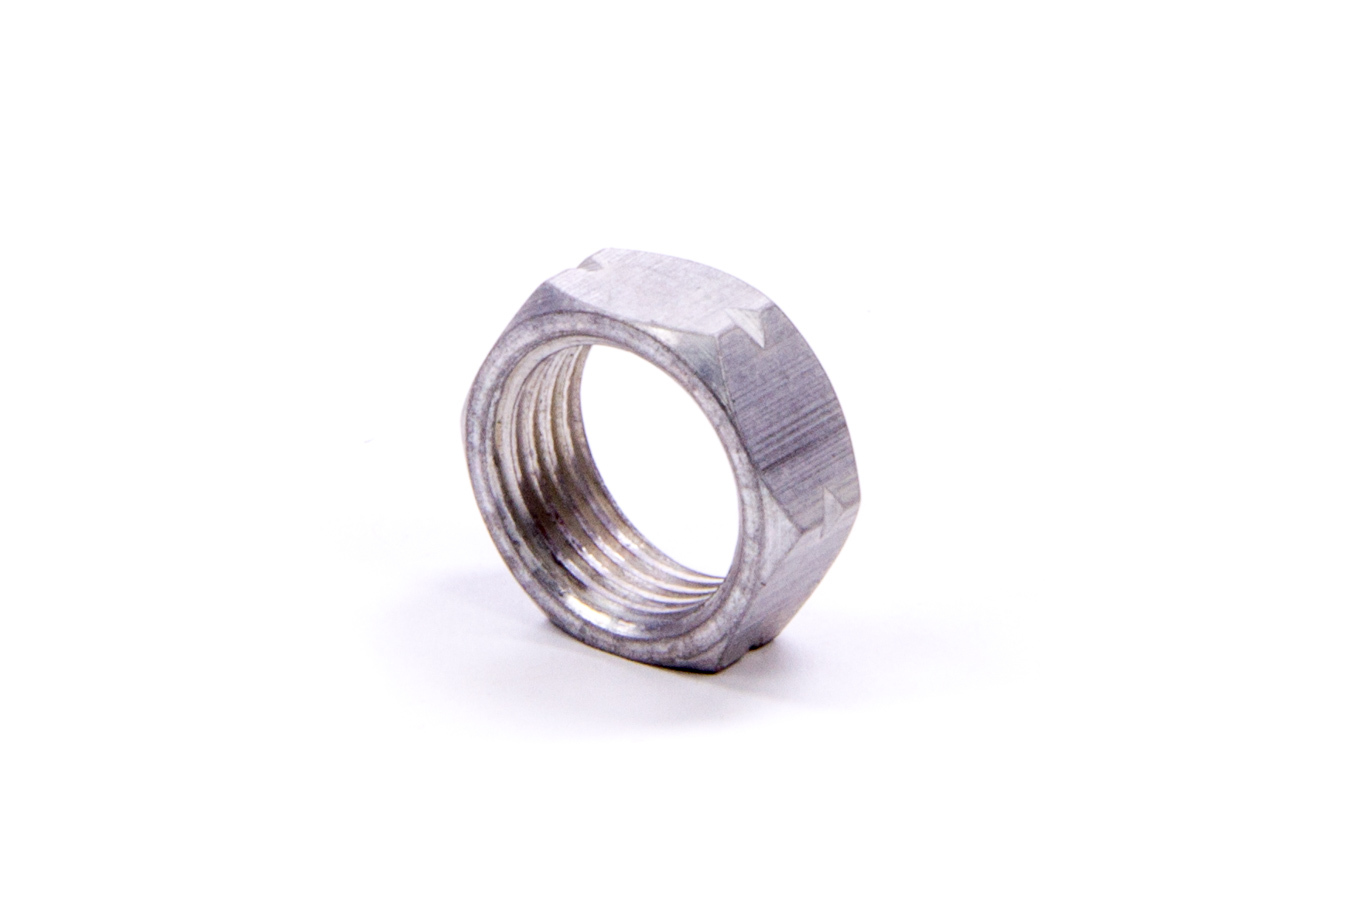 M & W Aluminum Products AJN-10R Jam Nut, 5/8-18 in Right Hand Thread, 5/16 in Thick, Aluminum, Natural, Each